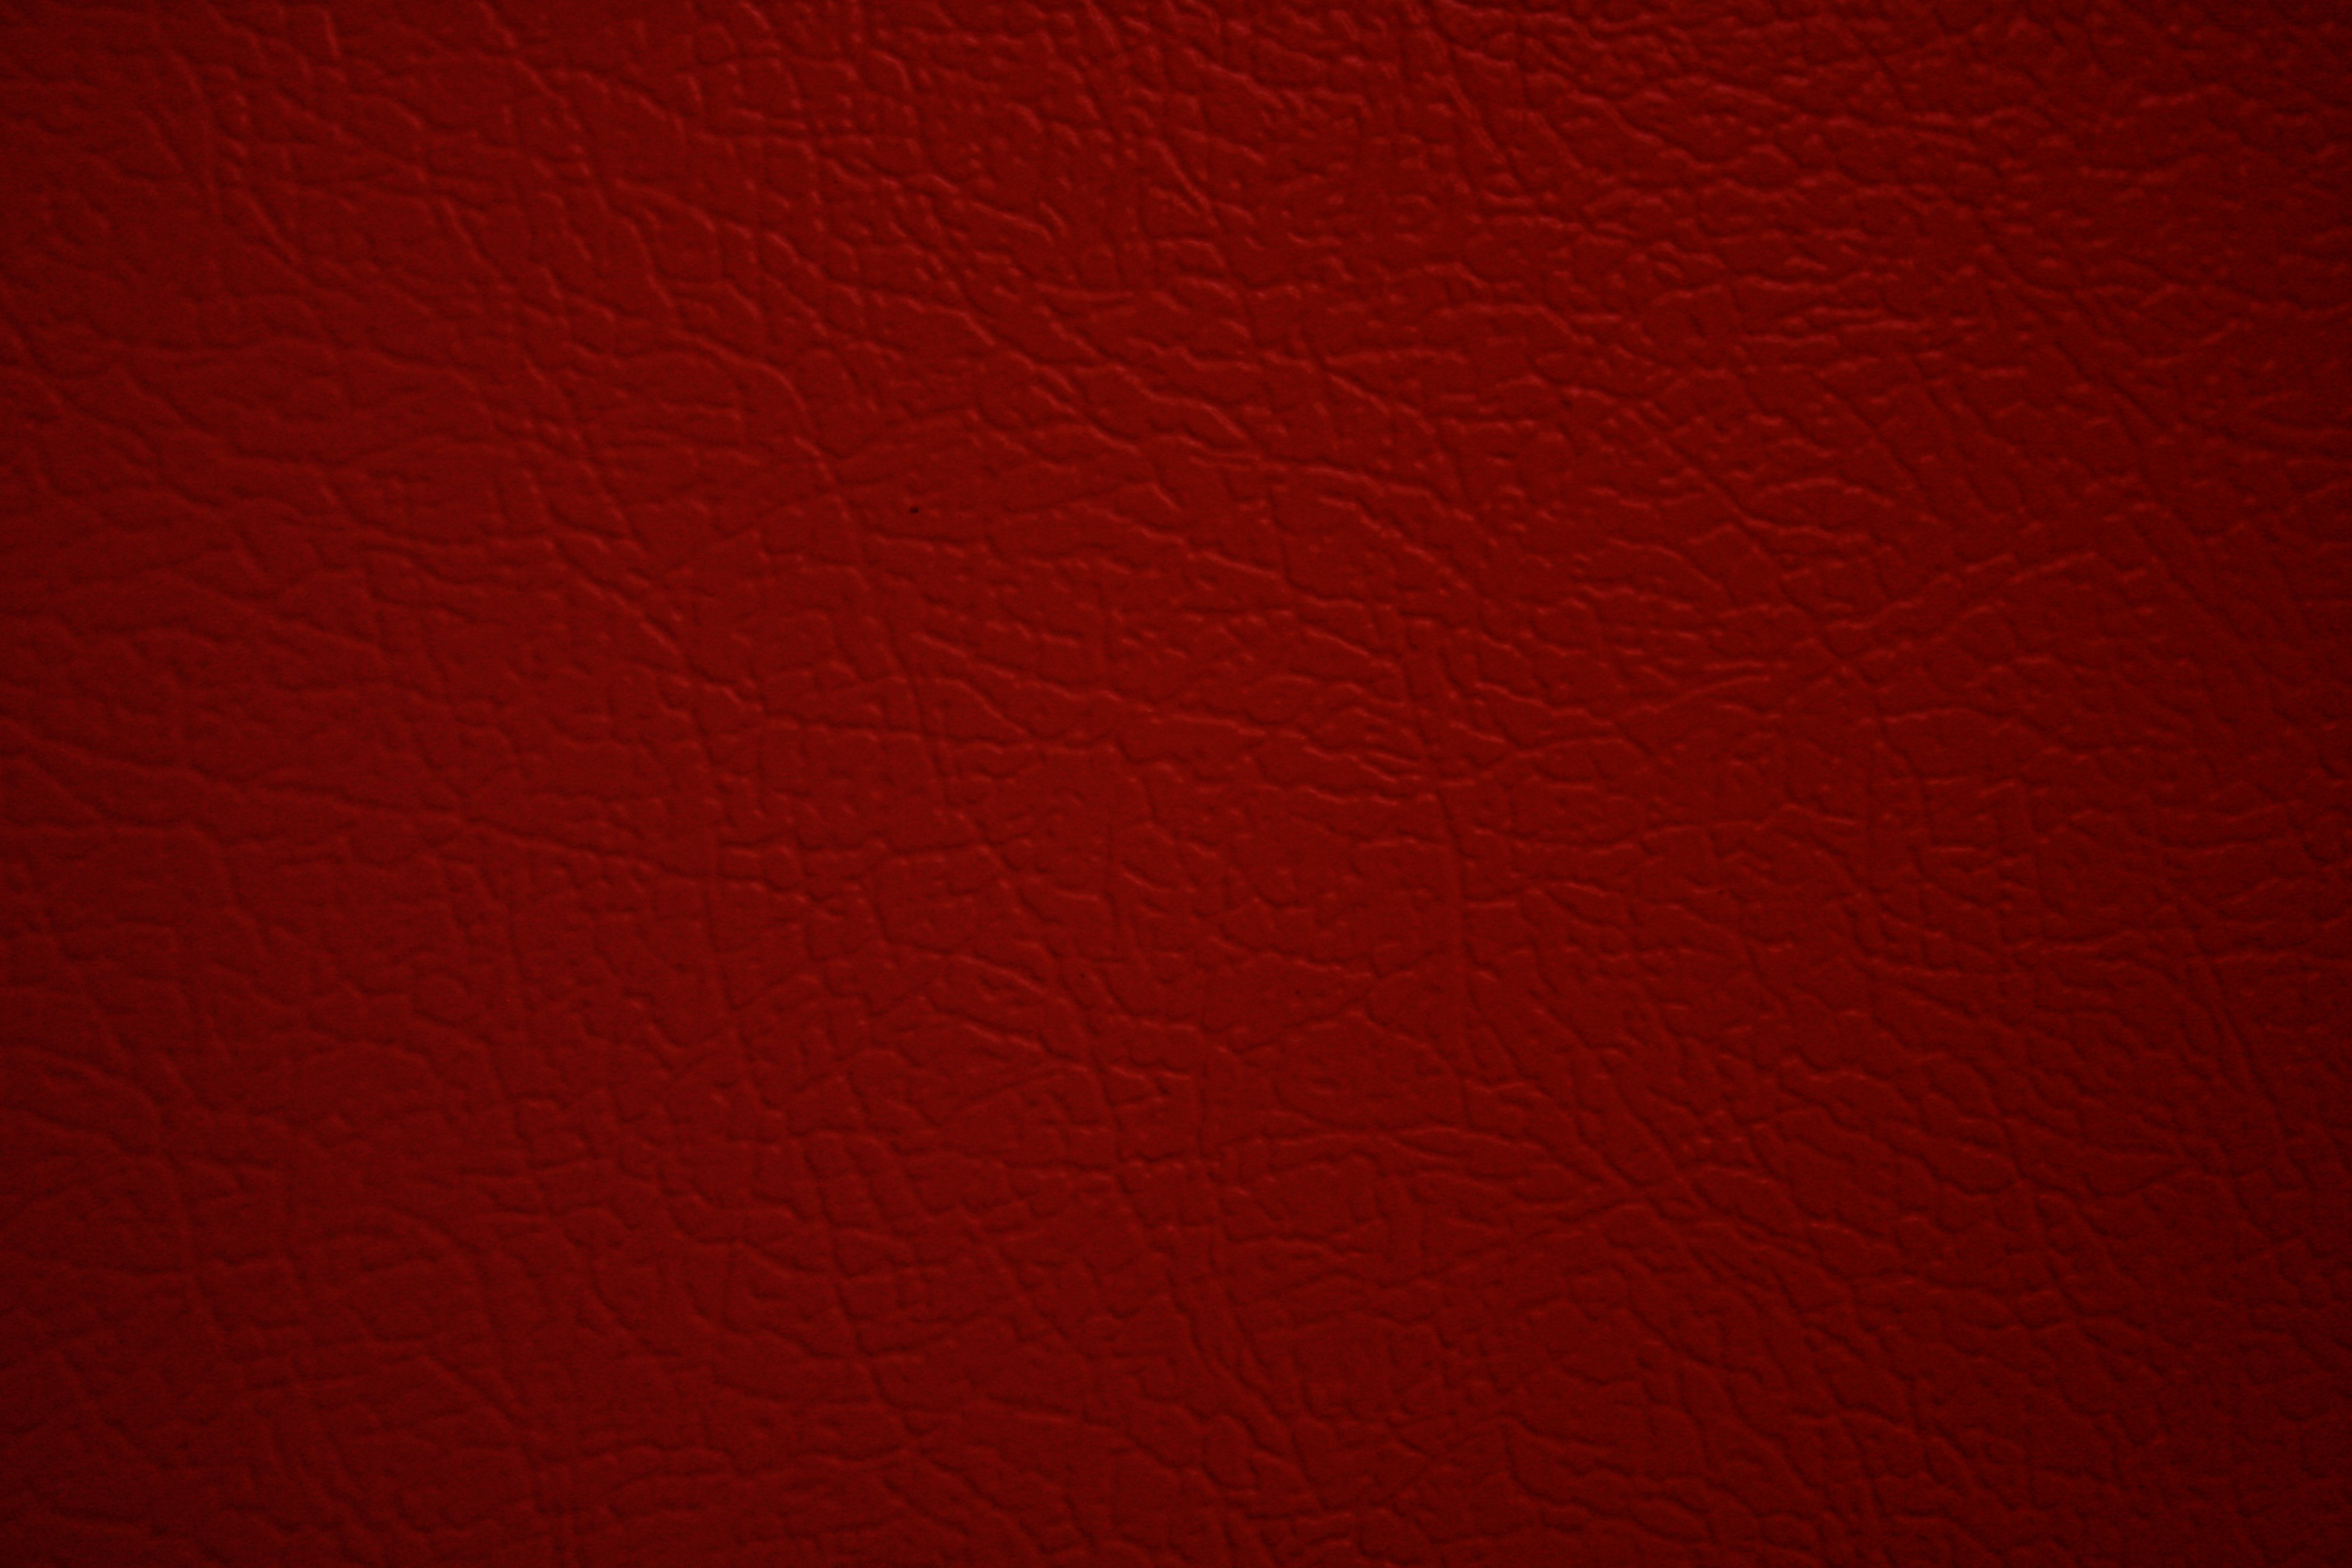 Red Faux Leather Texture Picture Photograph Photos Public 3888x2592